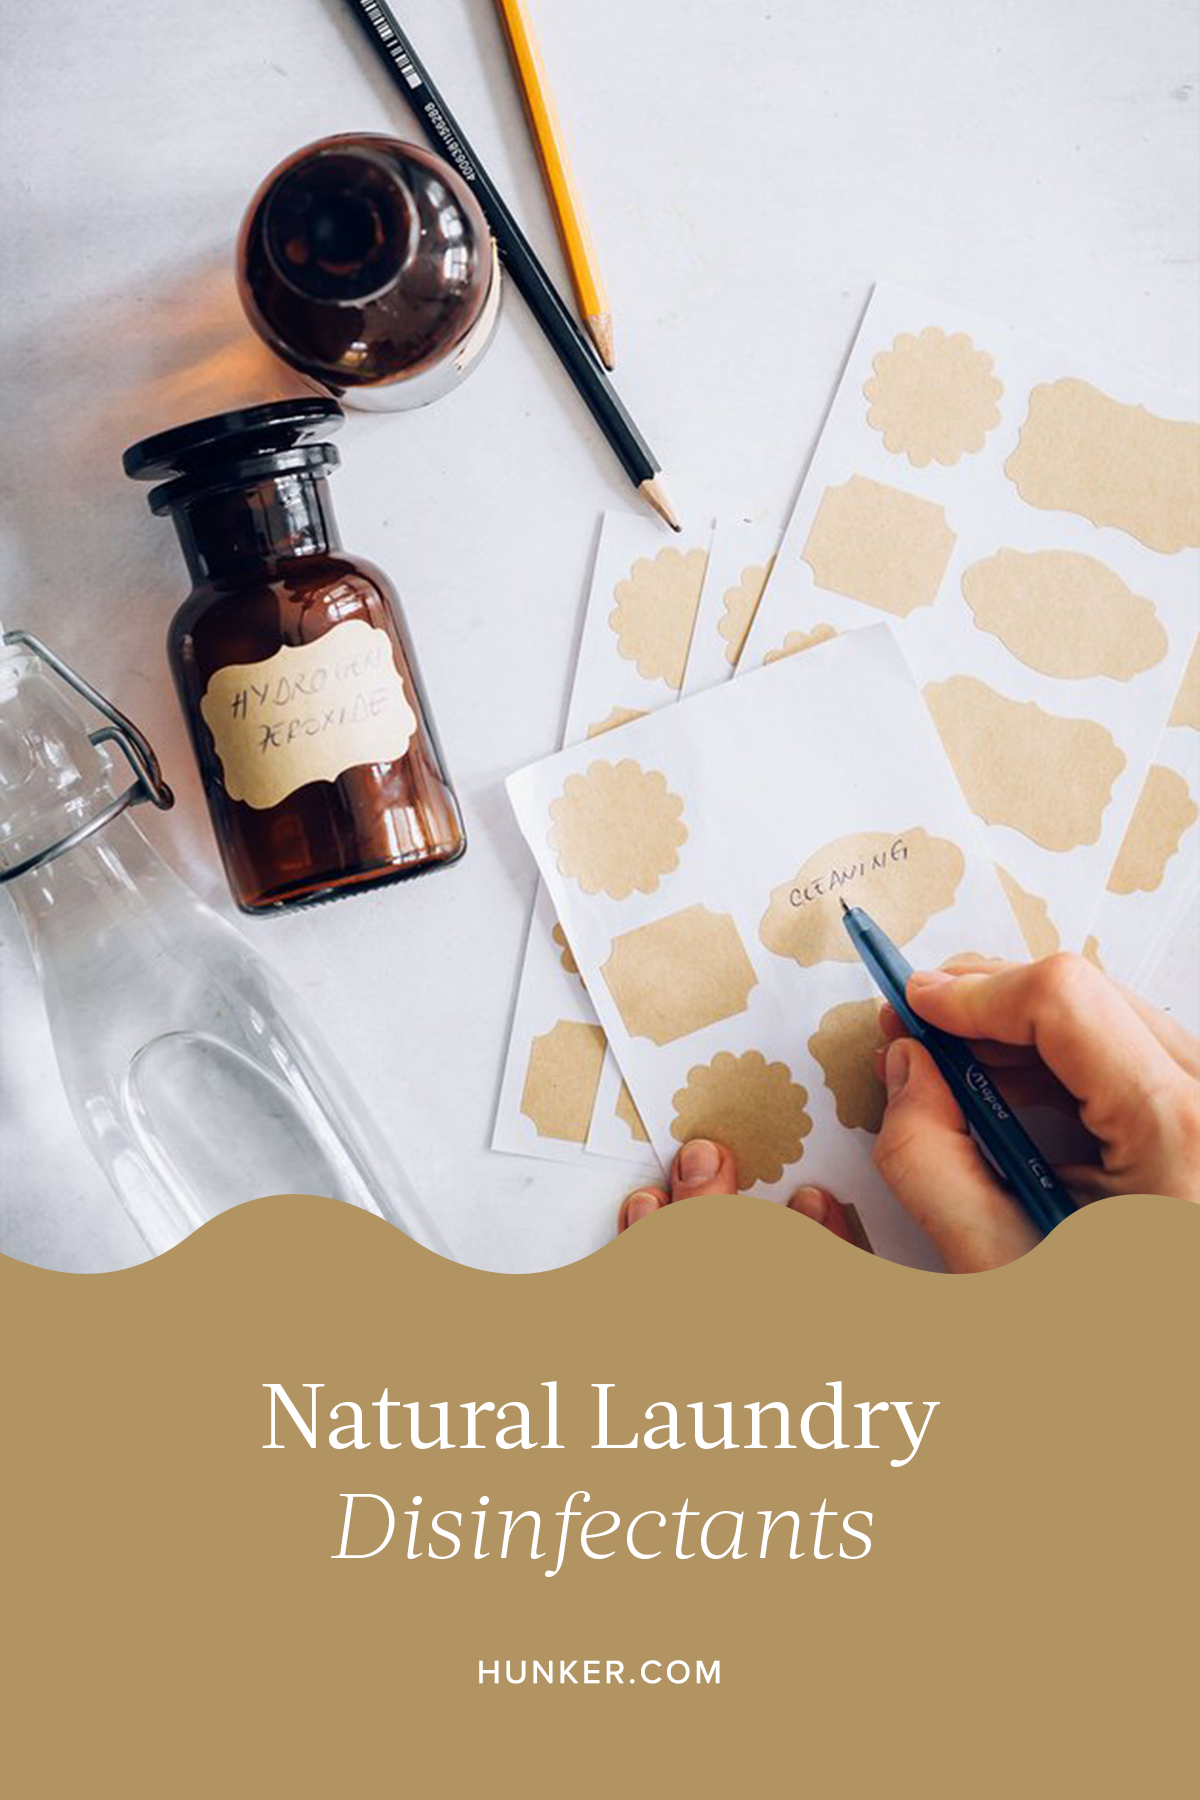 List Of Laundry Disinfectants When You Want Something Not So Harsh